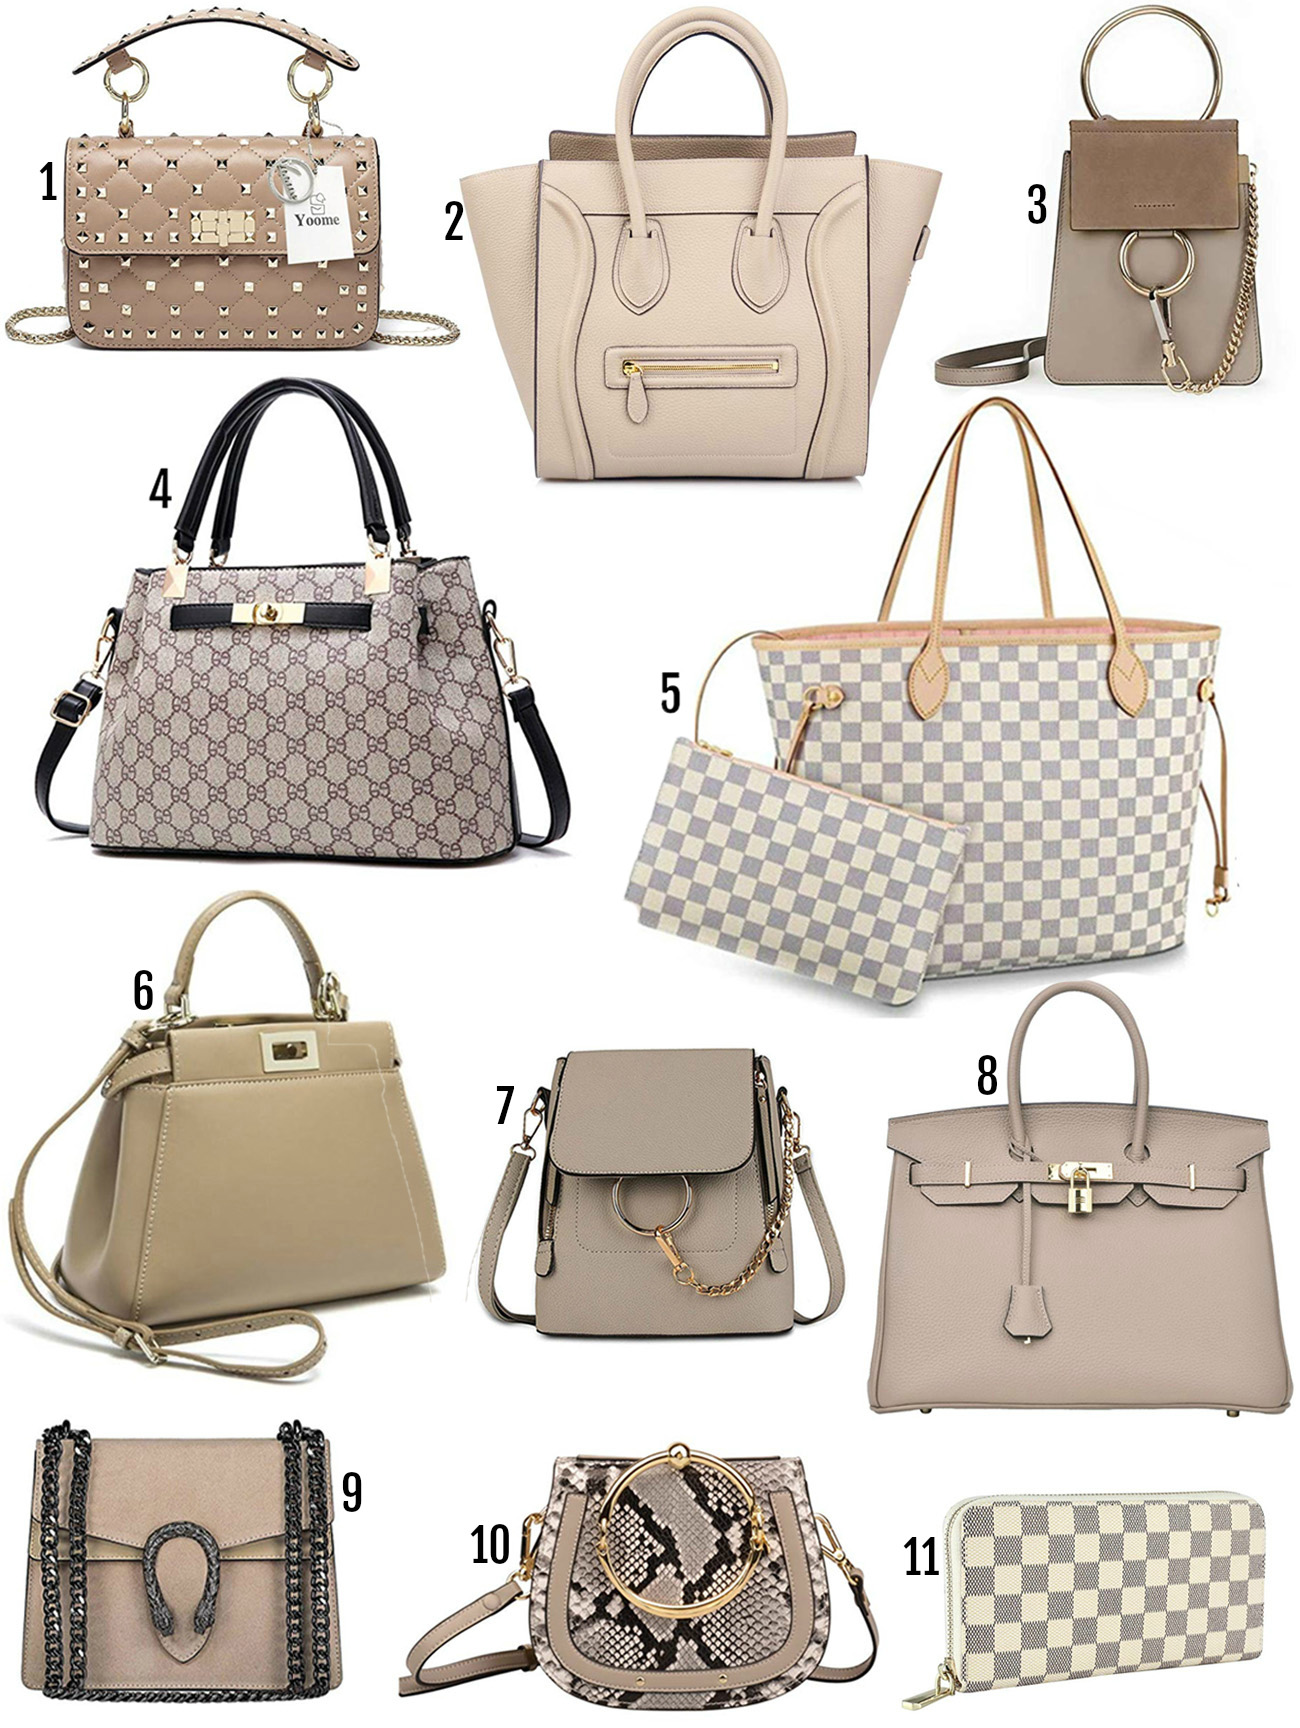 Mash Elle beauty blogger designer bag dupe | Amazon prime bags | bags that look designer | fake designer bags | Mash Elle gucci | tan taupe purse